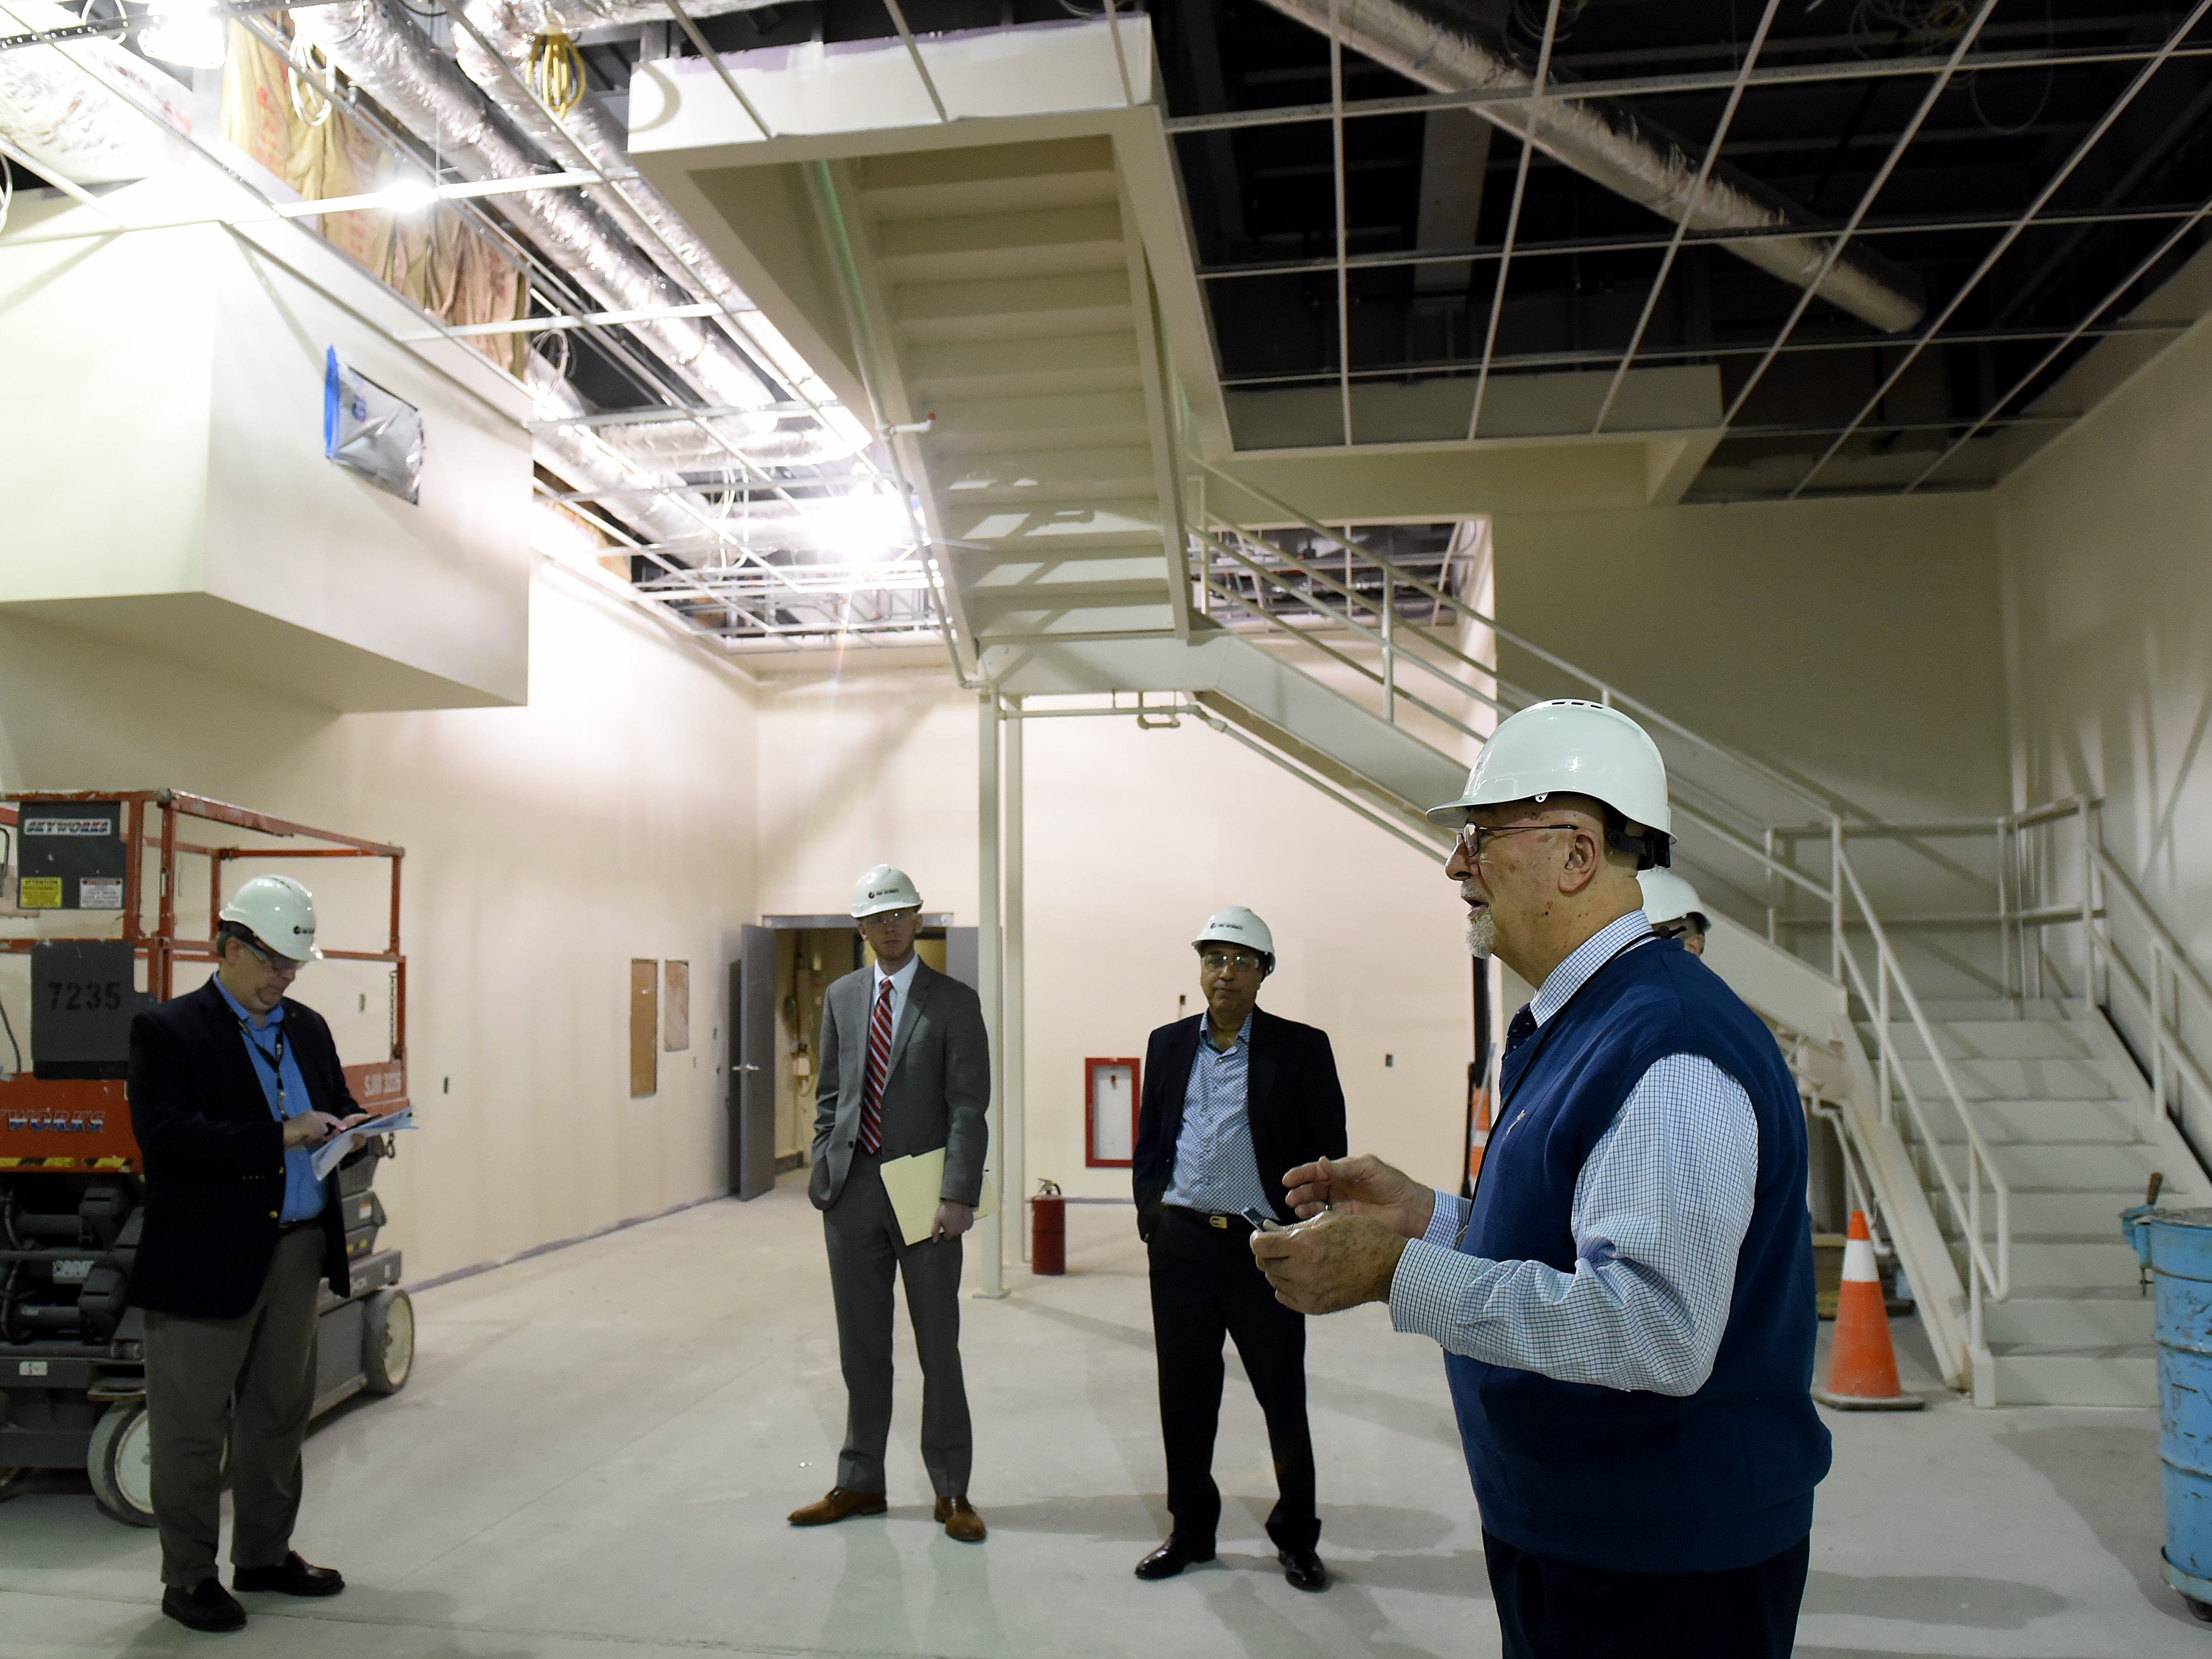 Ben Fullen, program director for Bionetics, explains the future plans for the Air Force Primary Standards Laboratory at the Port Authority campus in Heath. U.S. Rep. Troy Balderson, R-Zanesville, toured five companies at the growing Central Ohio Aerospace and Technology Center campus in Heath.